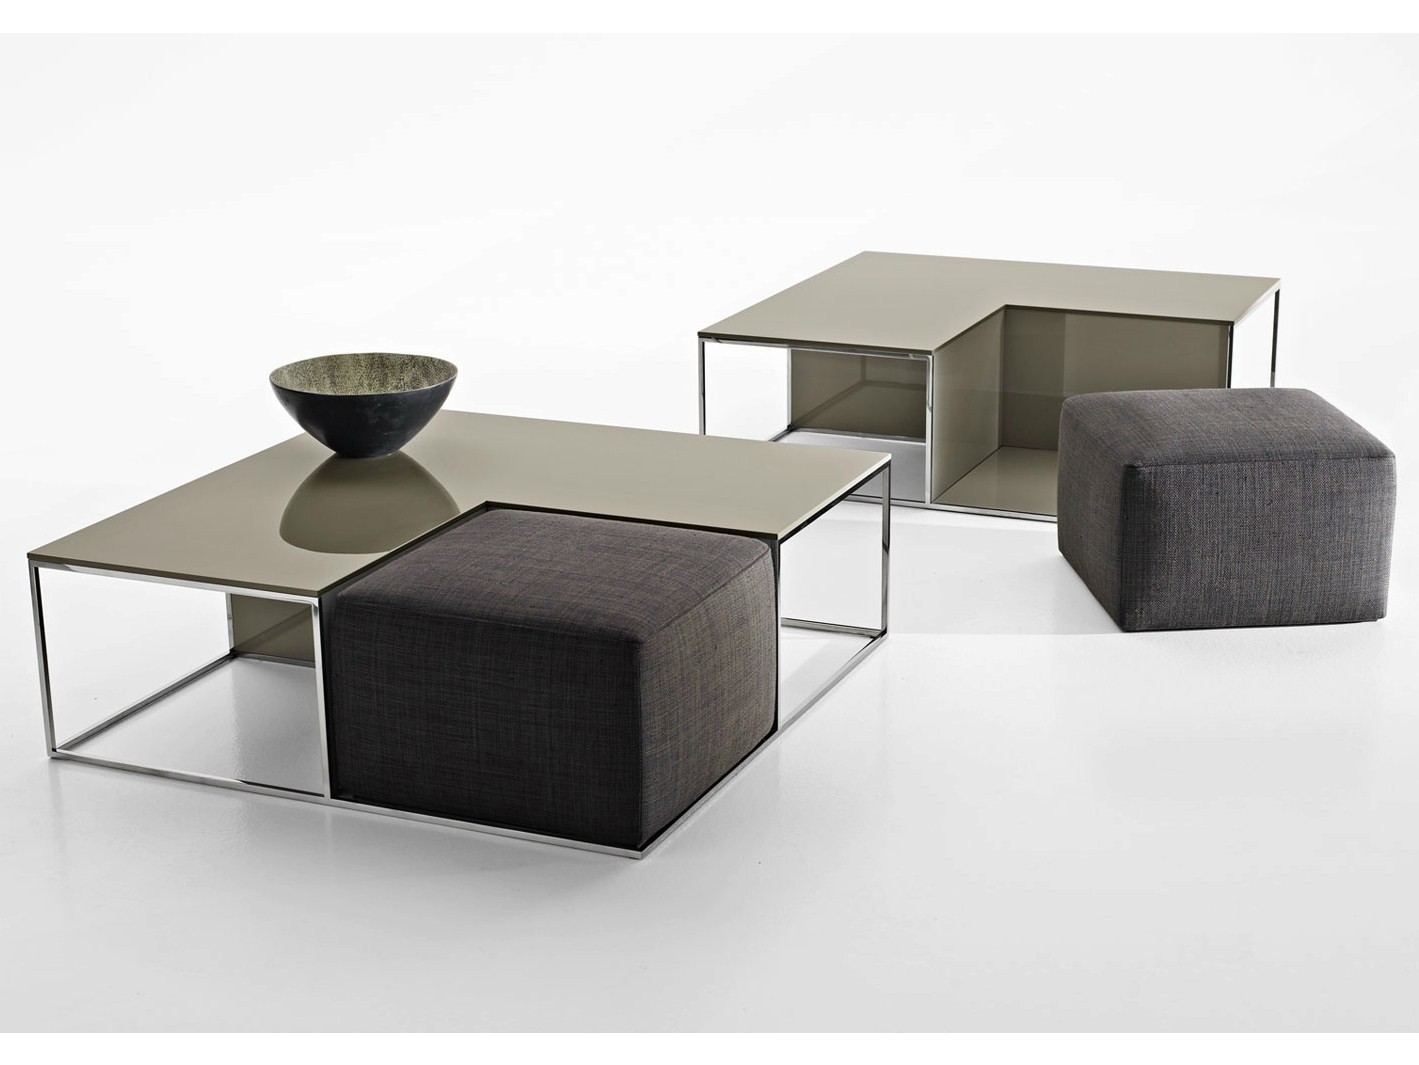 Pouf / Coffee Table AREA By B&B Italia Design Paolo Piva #615D4F 1419 1065 Tavoli A Scomparsa Mercatone Uno